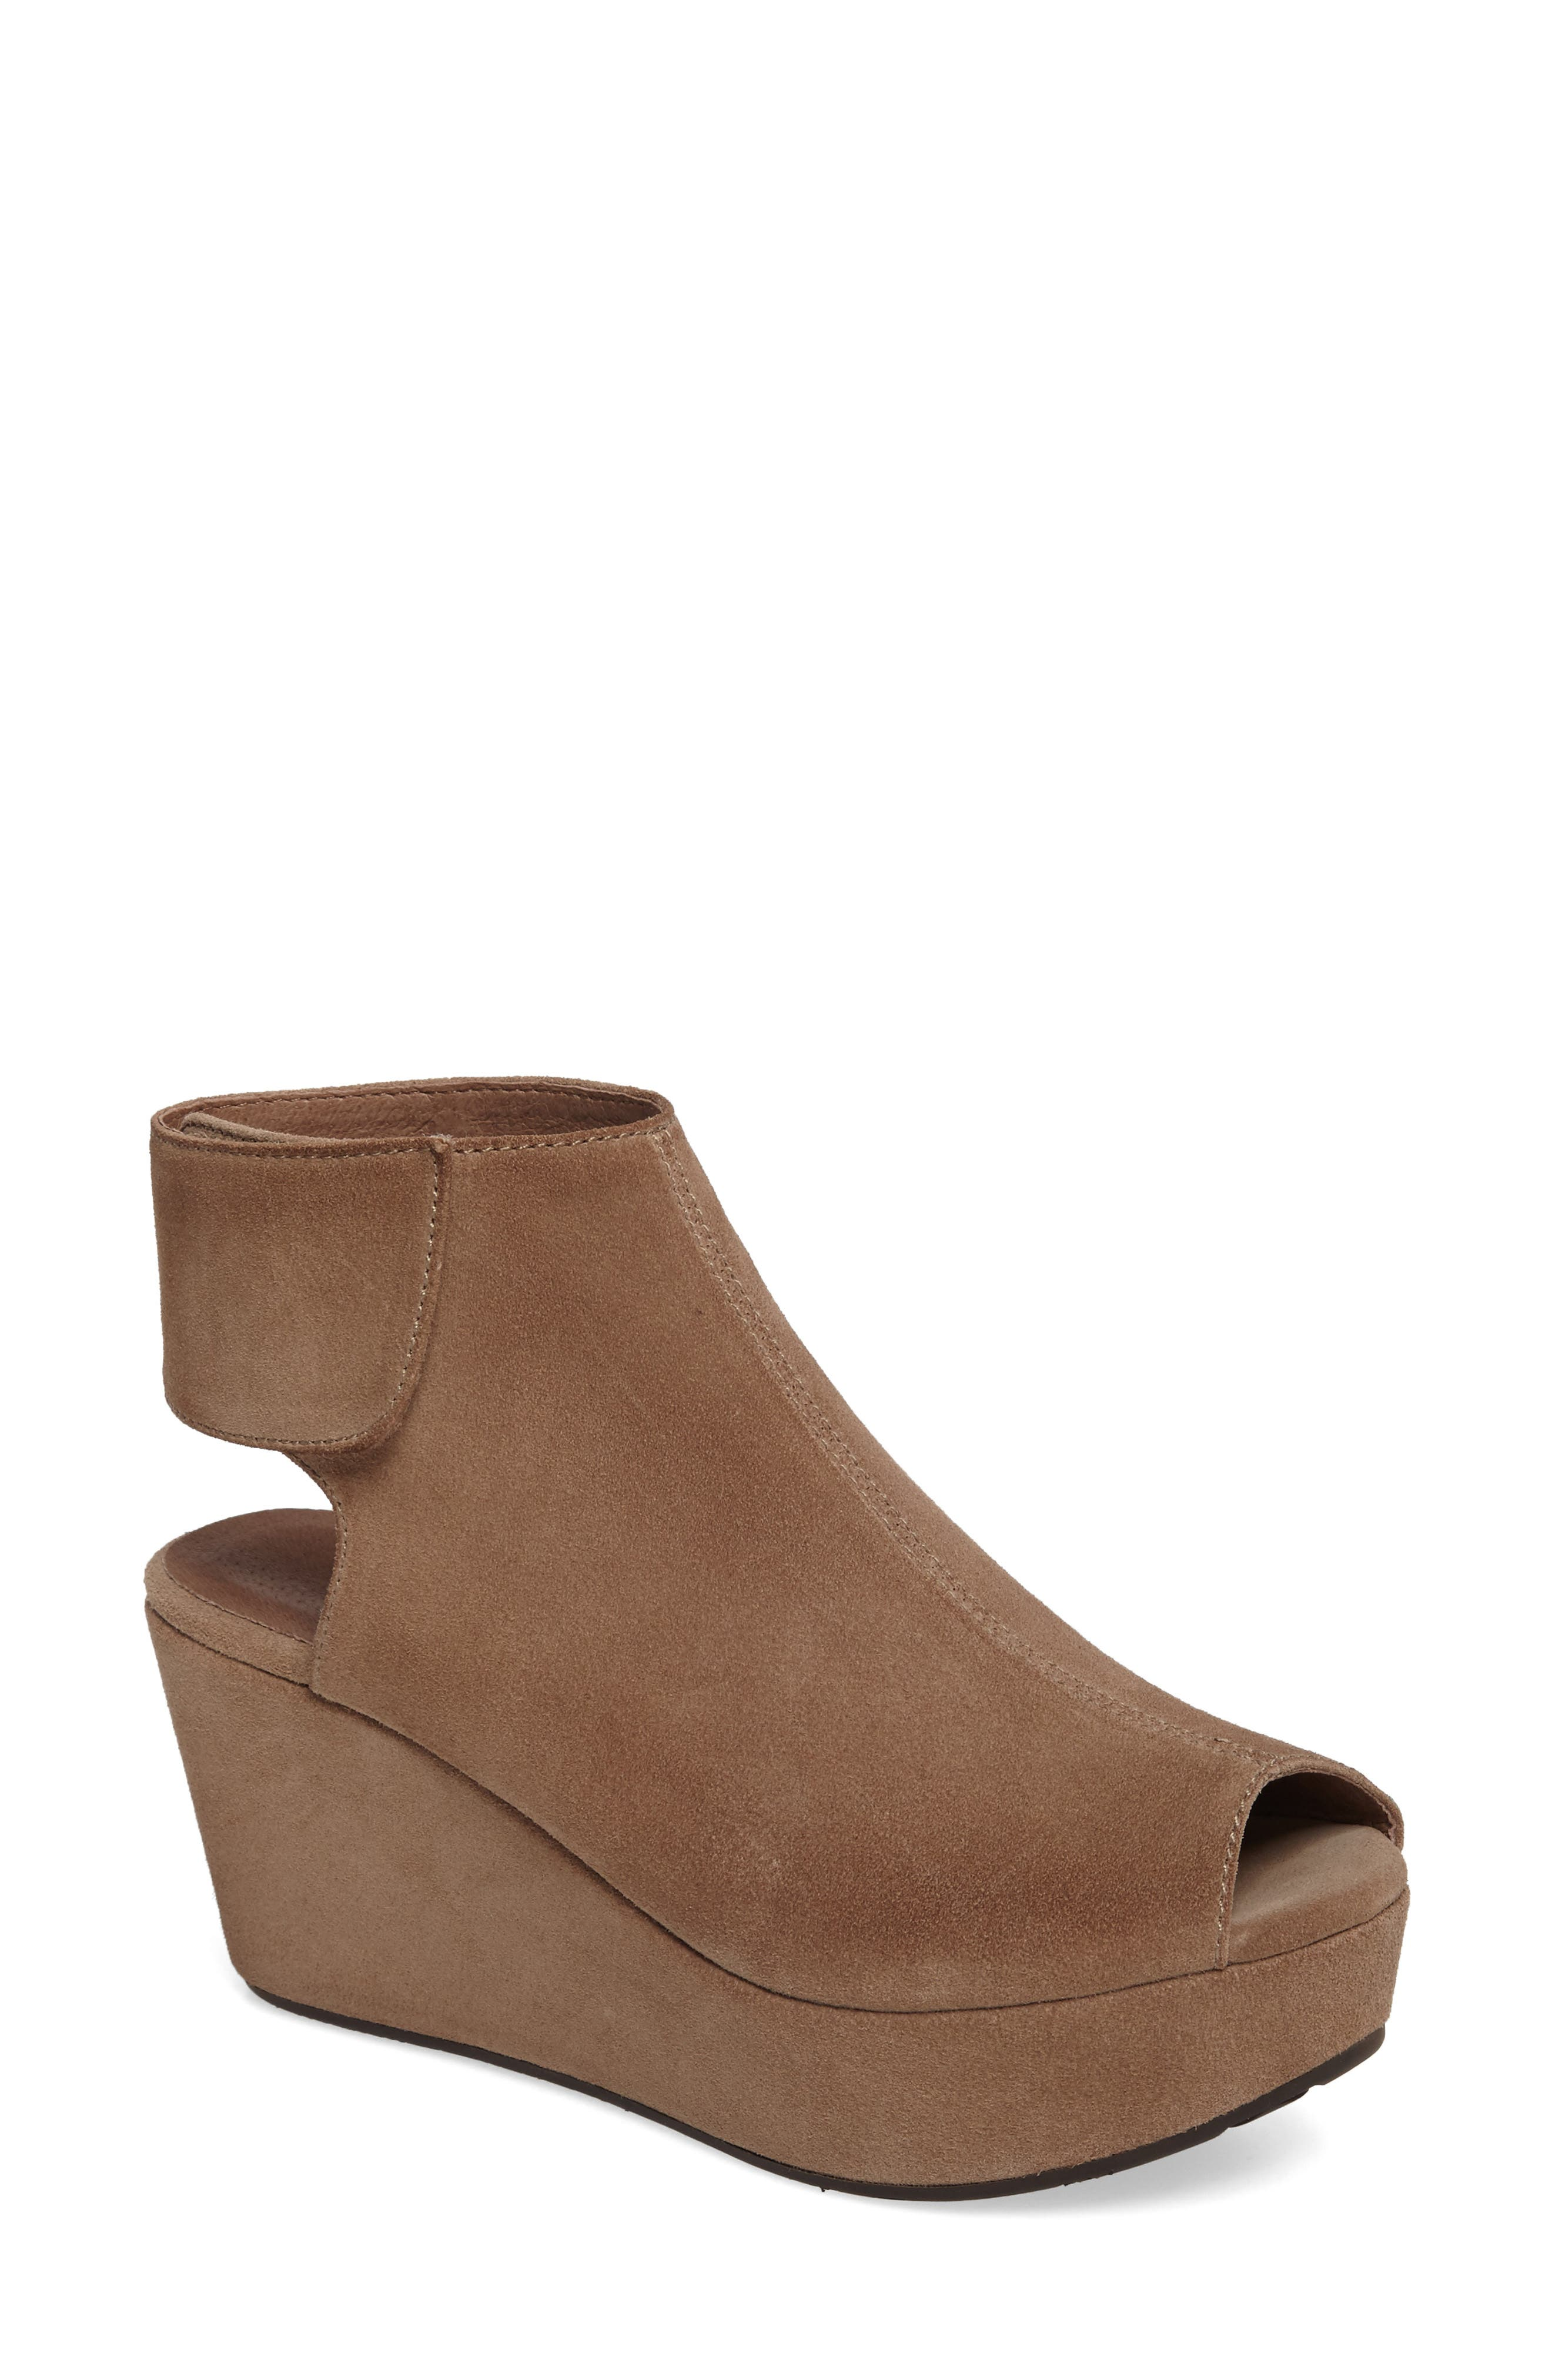 Chocolat Blu Cutout Wedge Sandal (Women)